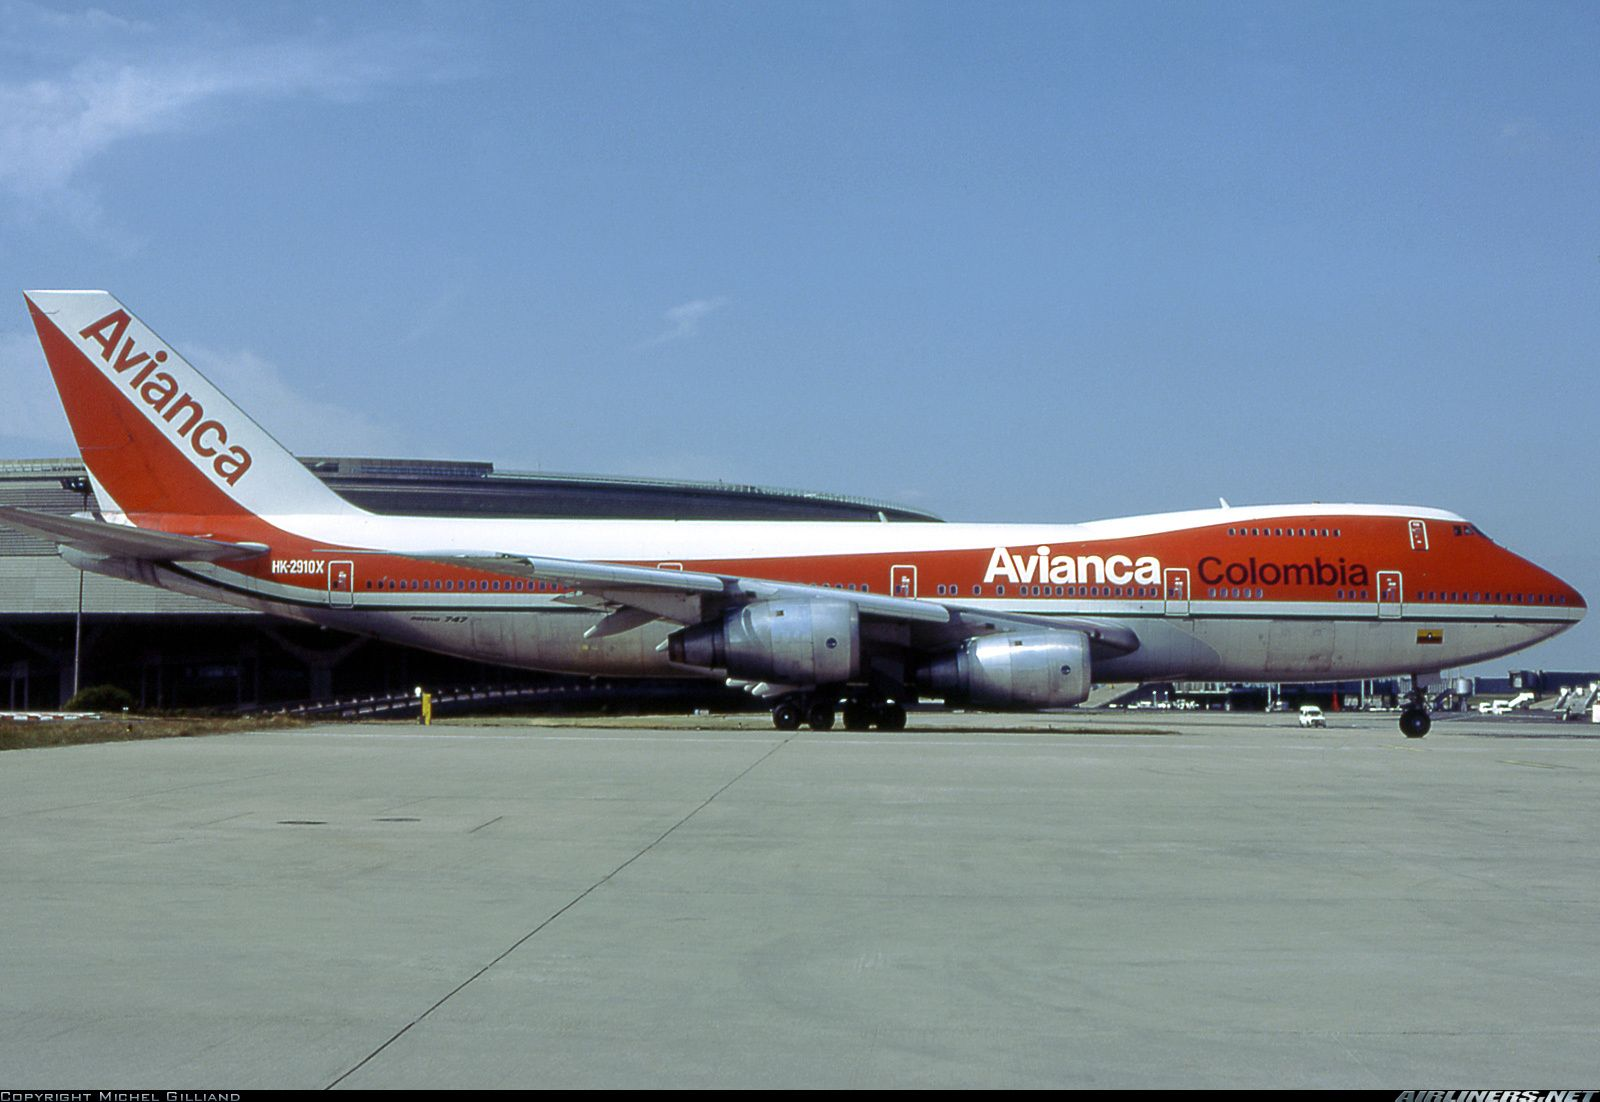 Photos Boeing 747283BM Aircraft Pictures in 2020